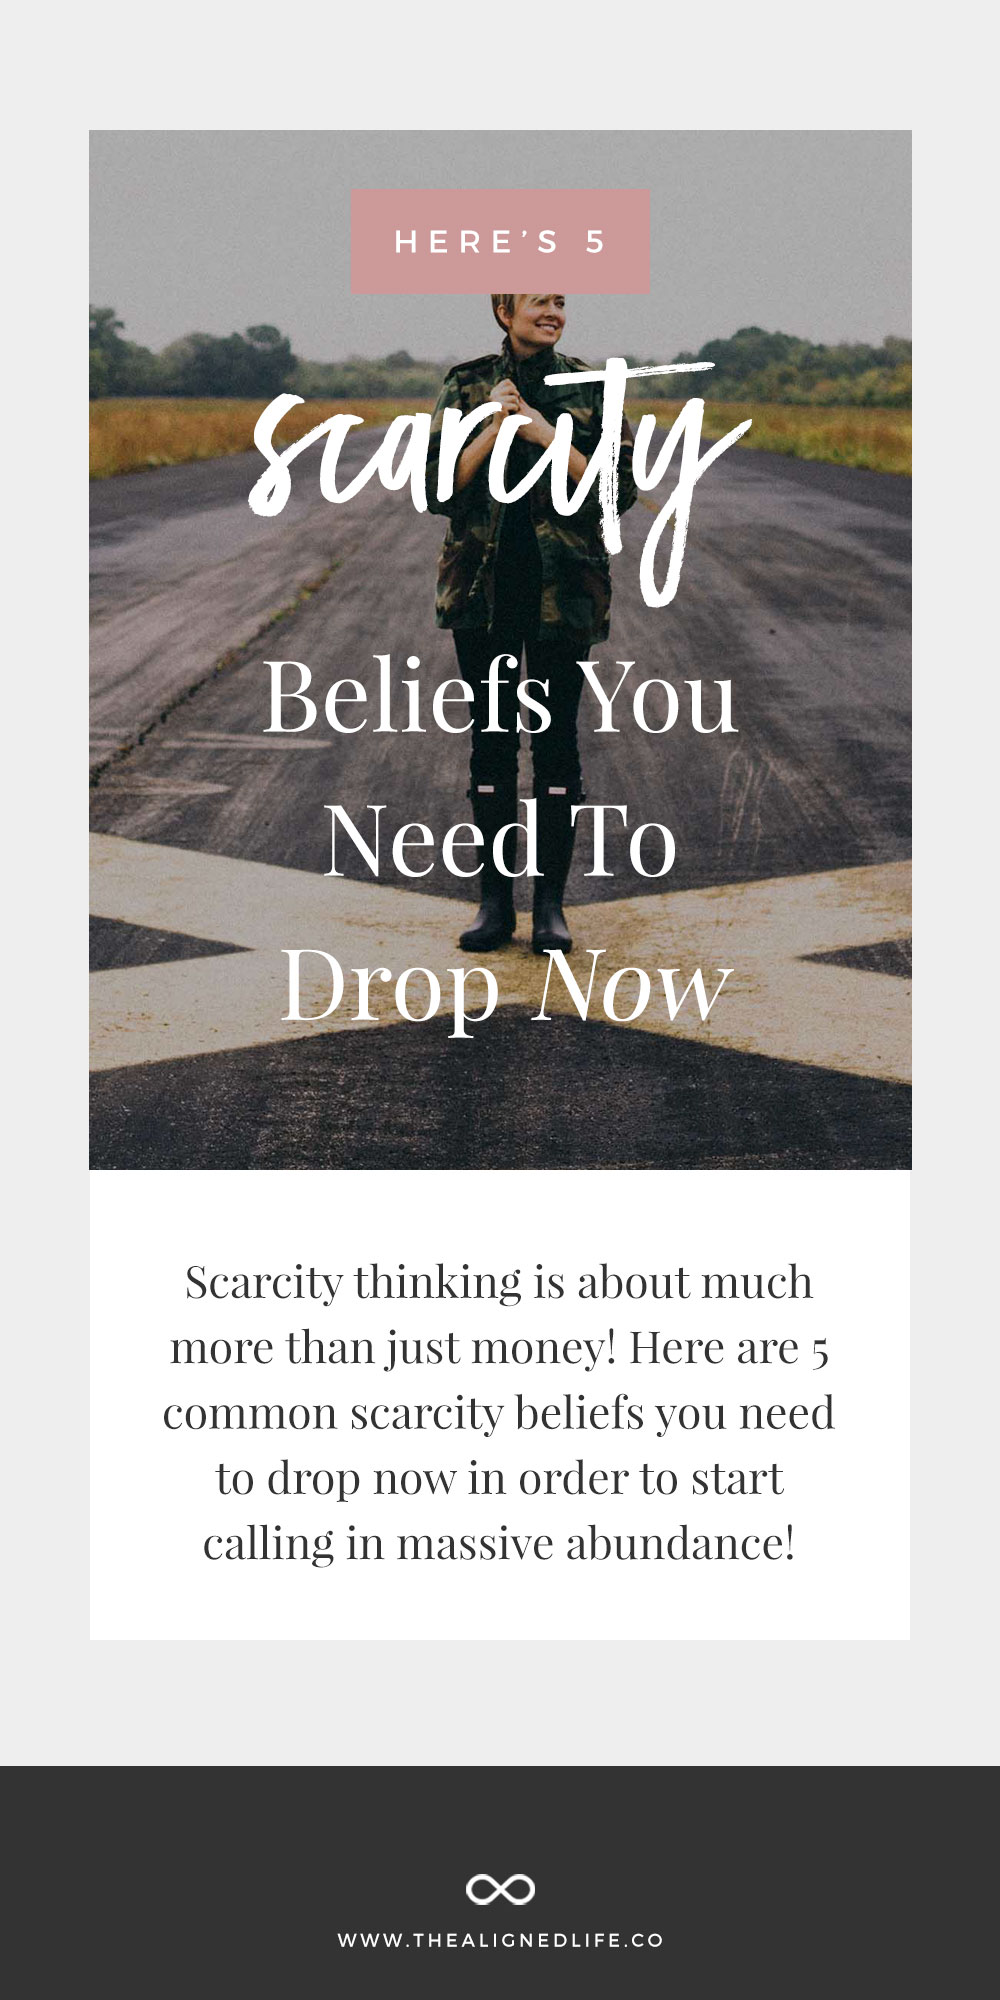 5 Scarcity Beliefs You Need To Drop NOW!